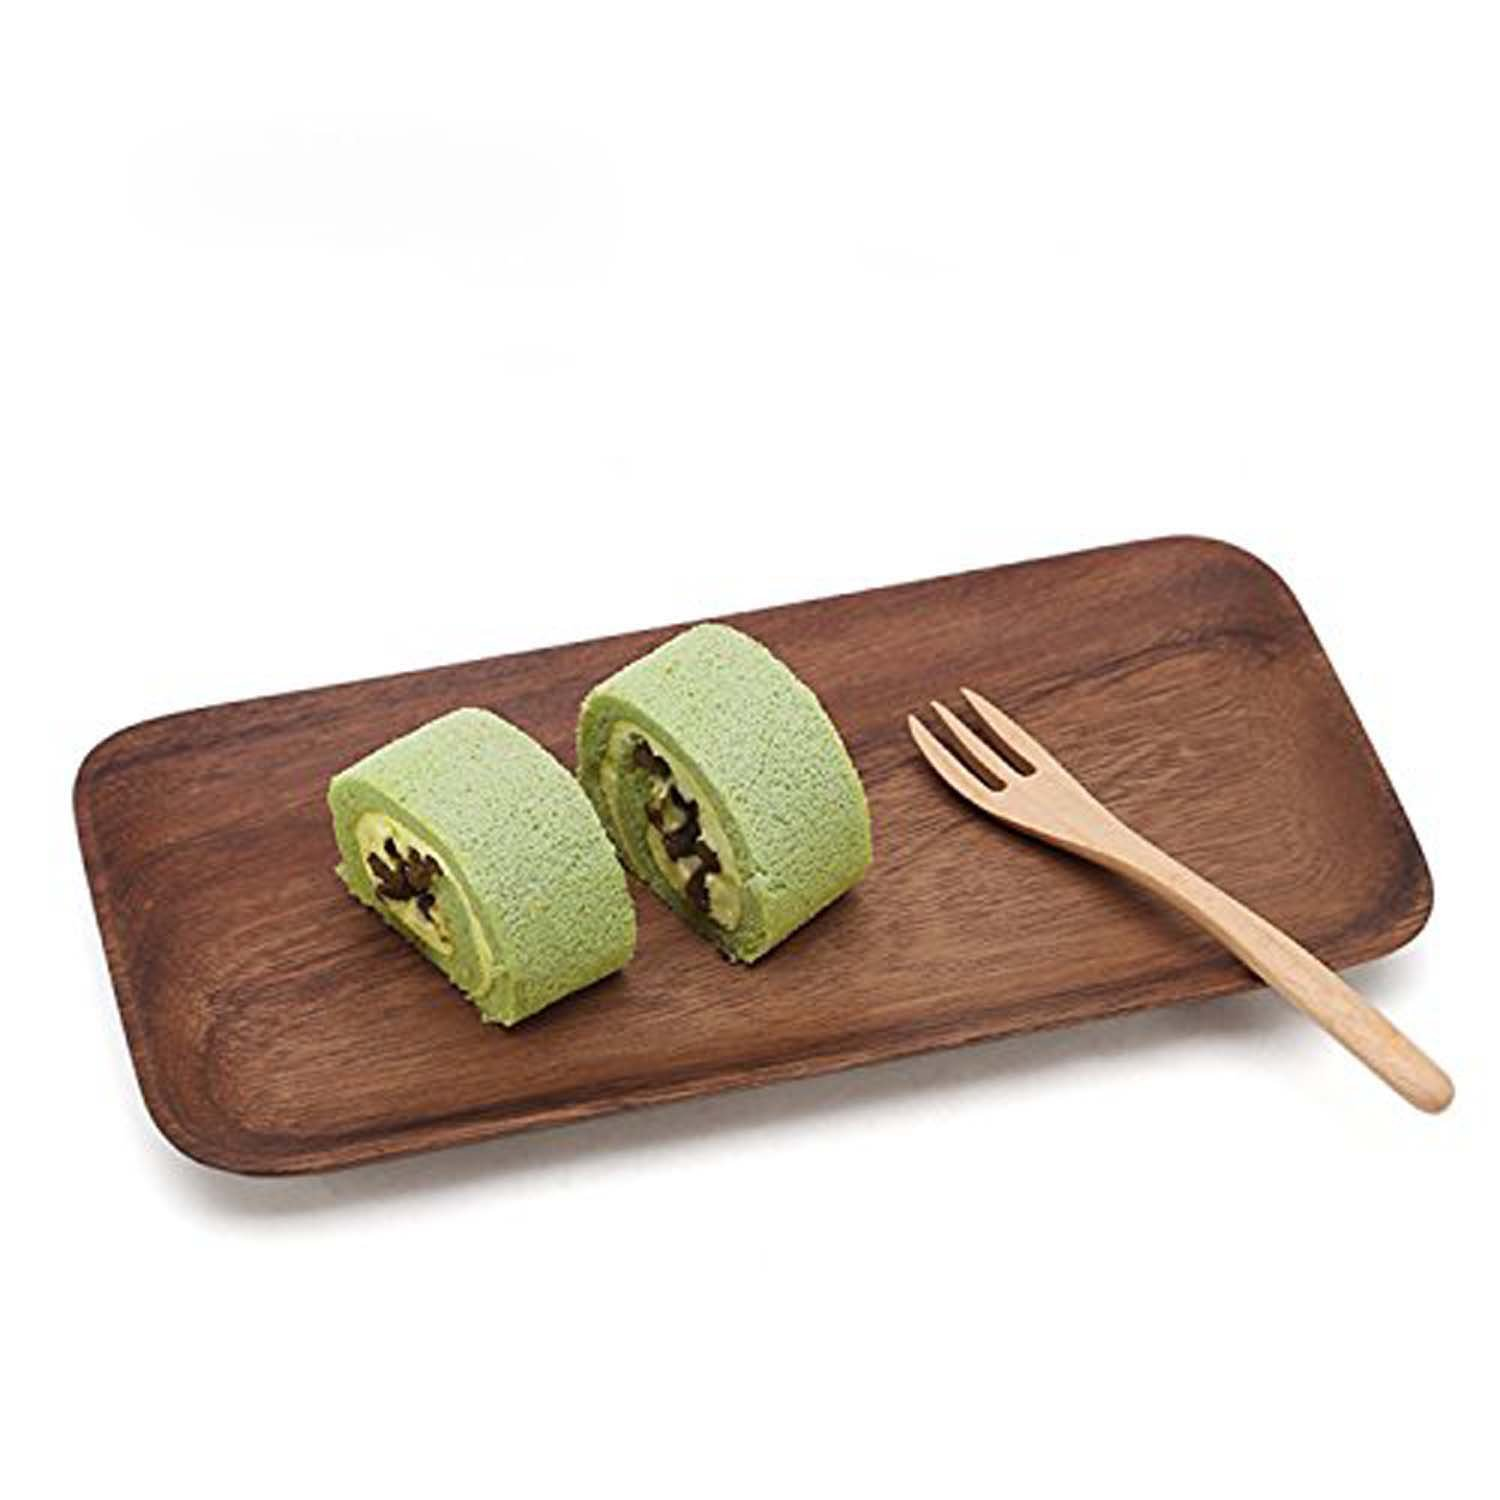 GOHIDE Rectangle Natural Wood Plates,Acacia wood plates,Square serving plates,Serveware,Serving Dishes,Trays and Platters for Food Fruit Tea,Handmade wooden Plate,Platters For Dessert Snack 25x16.2cm